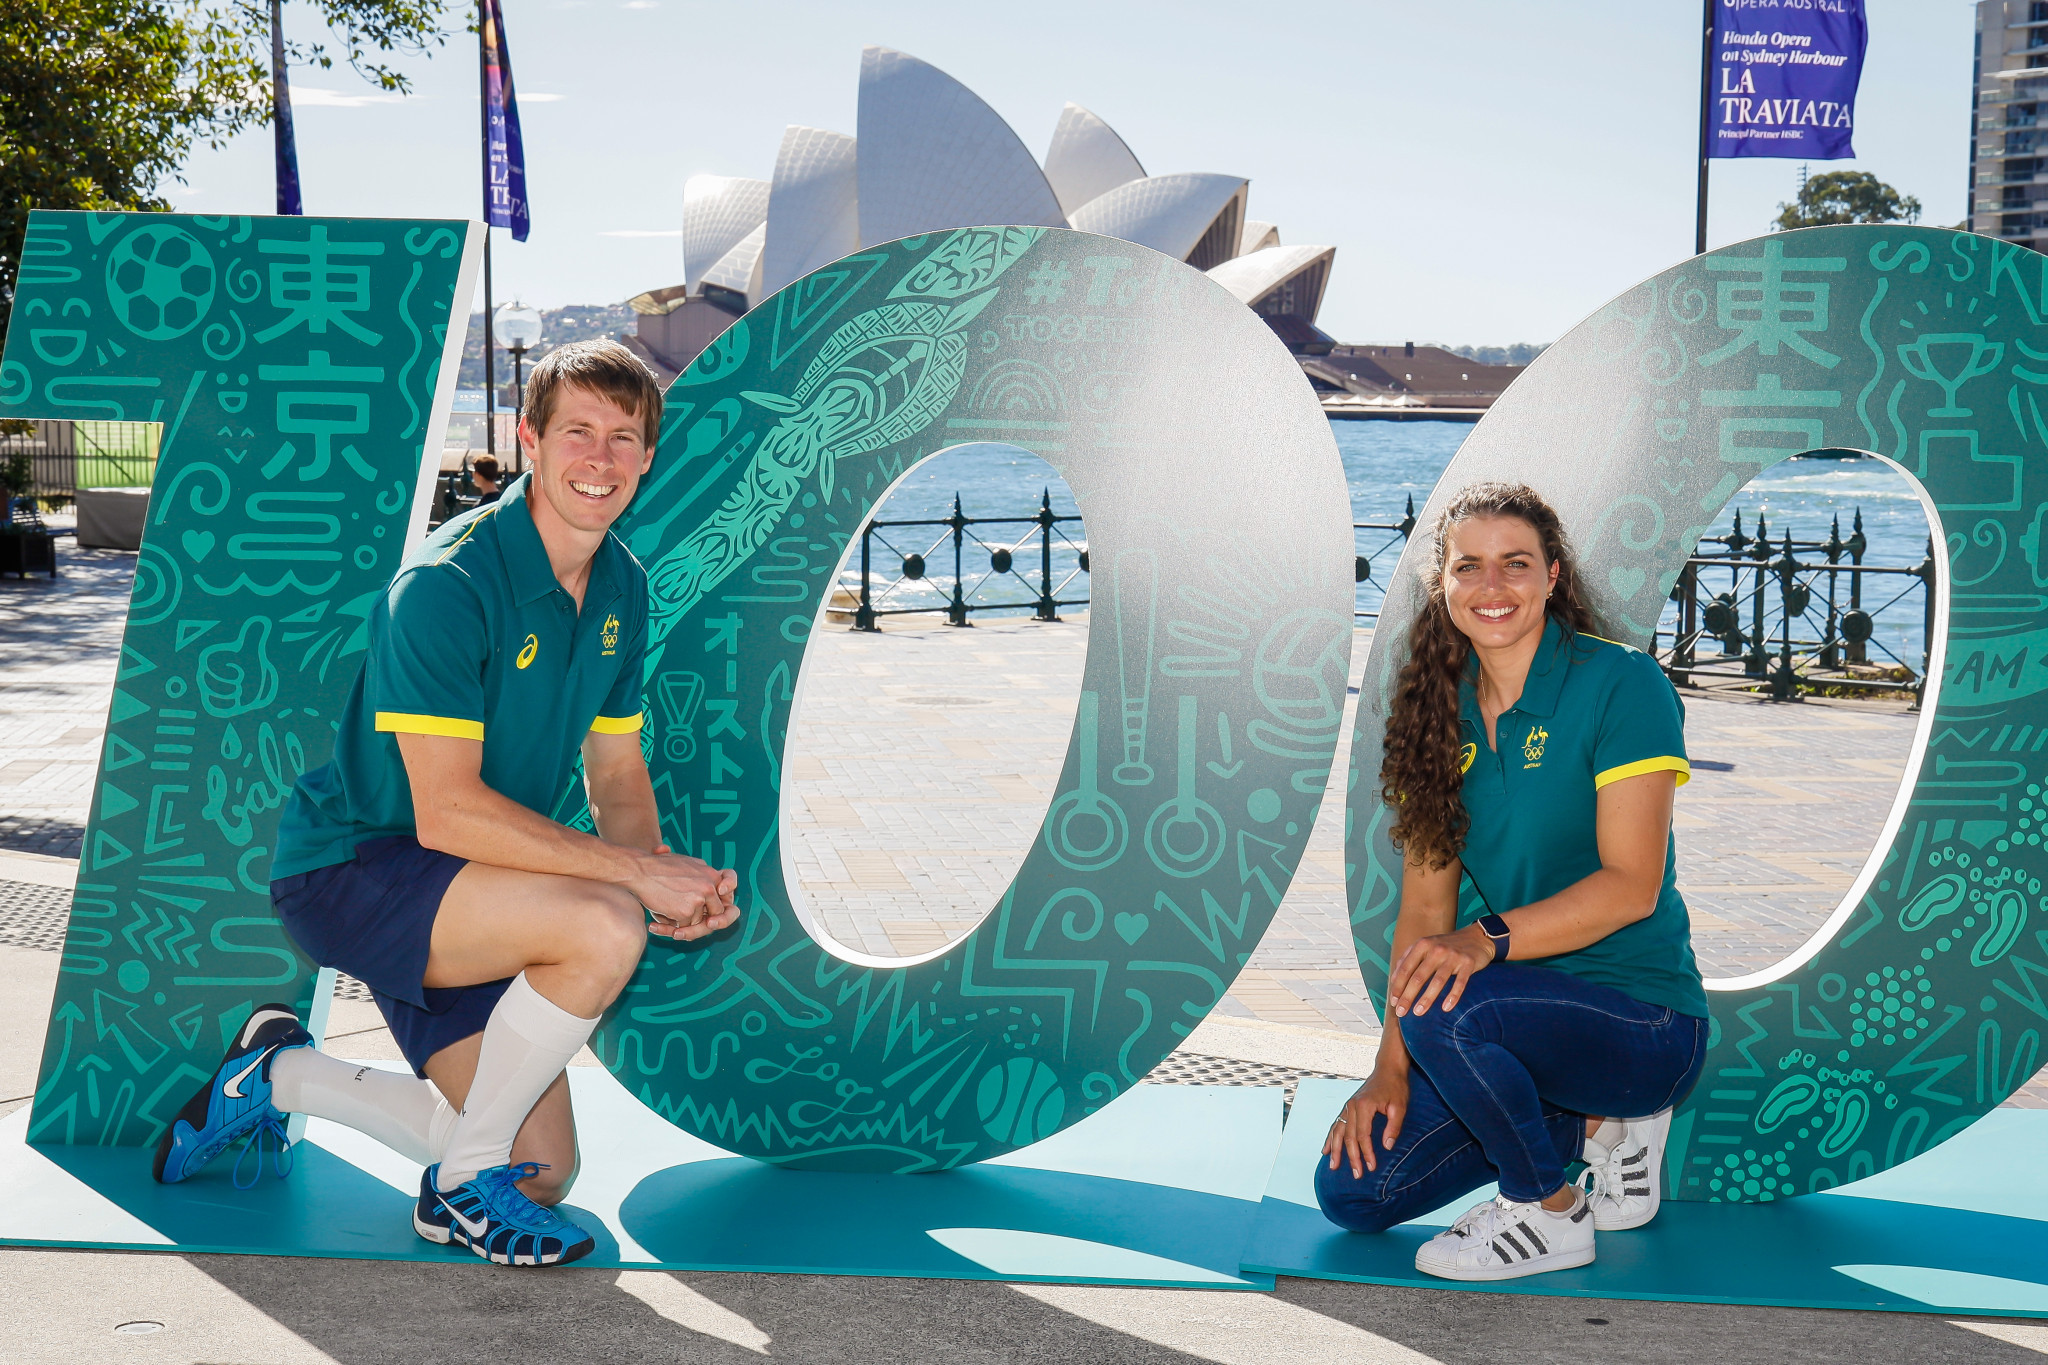 The Australian Olympic Committee marked 100 days until the start of Tokyo 2020 with the announcement of several live sites across the country ©AOC